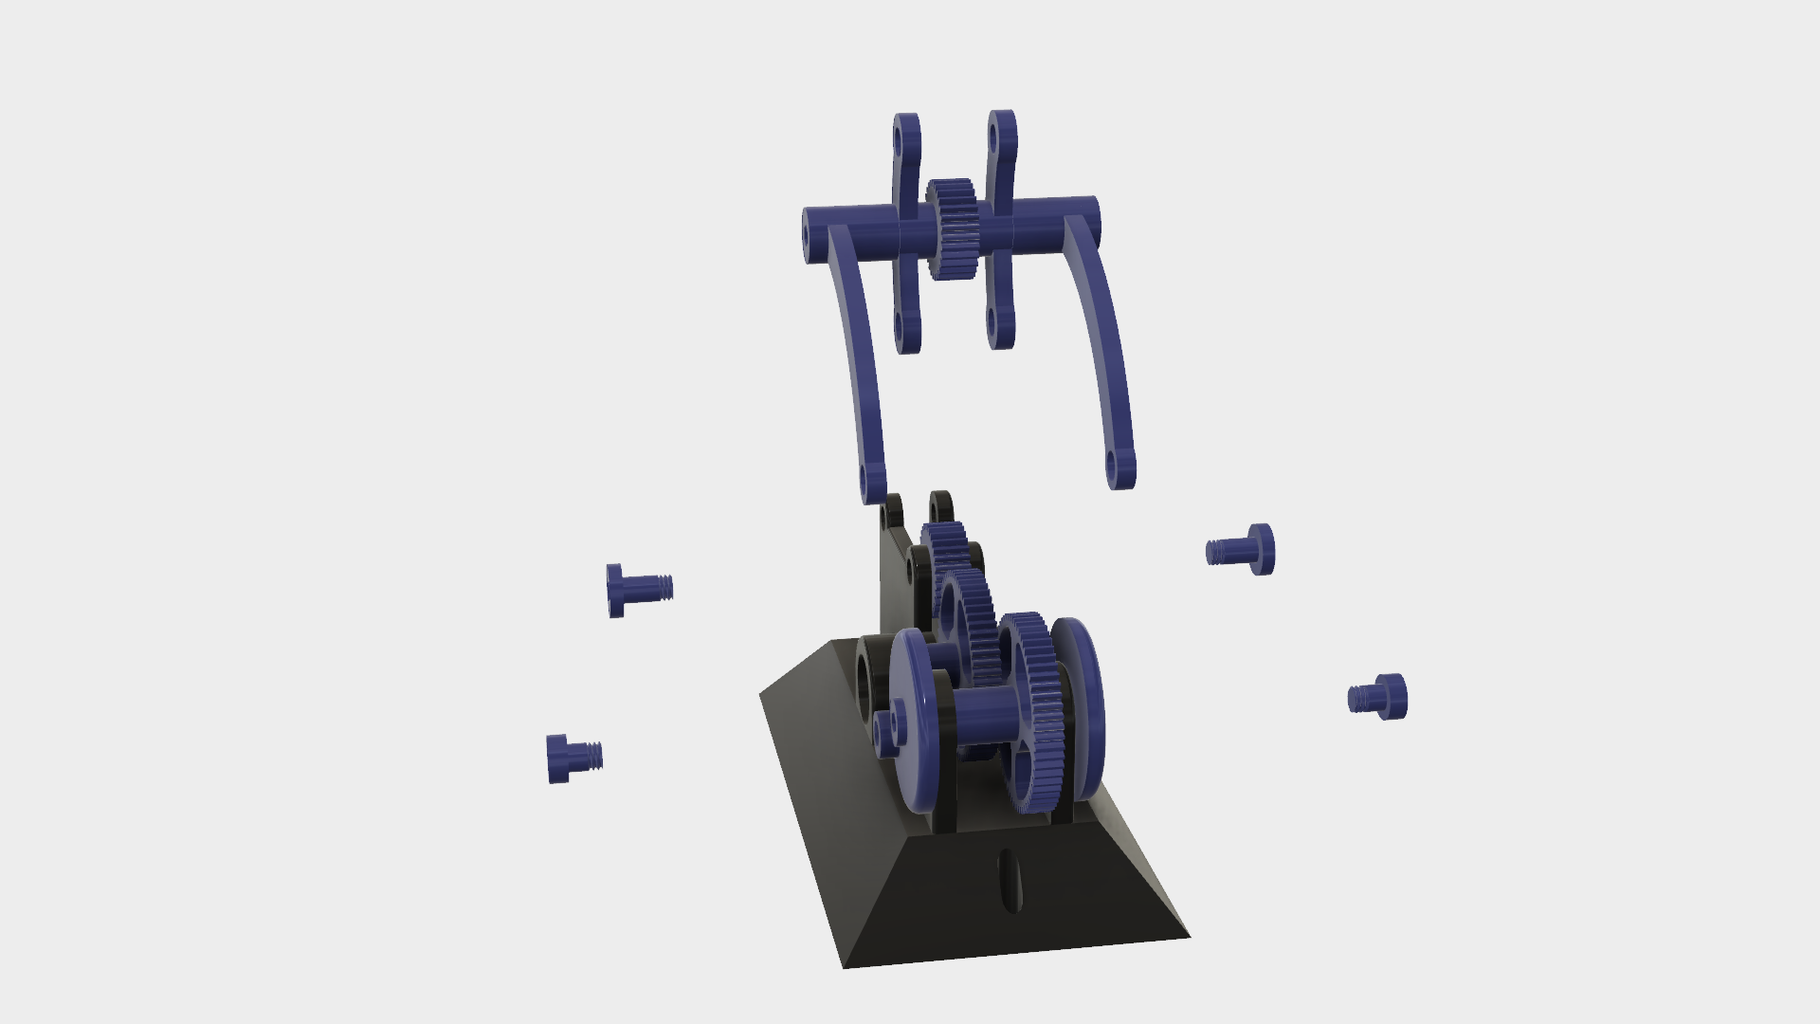 Attach the Transmission to the Base